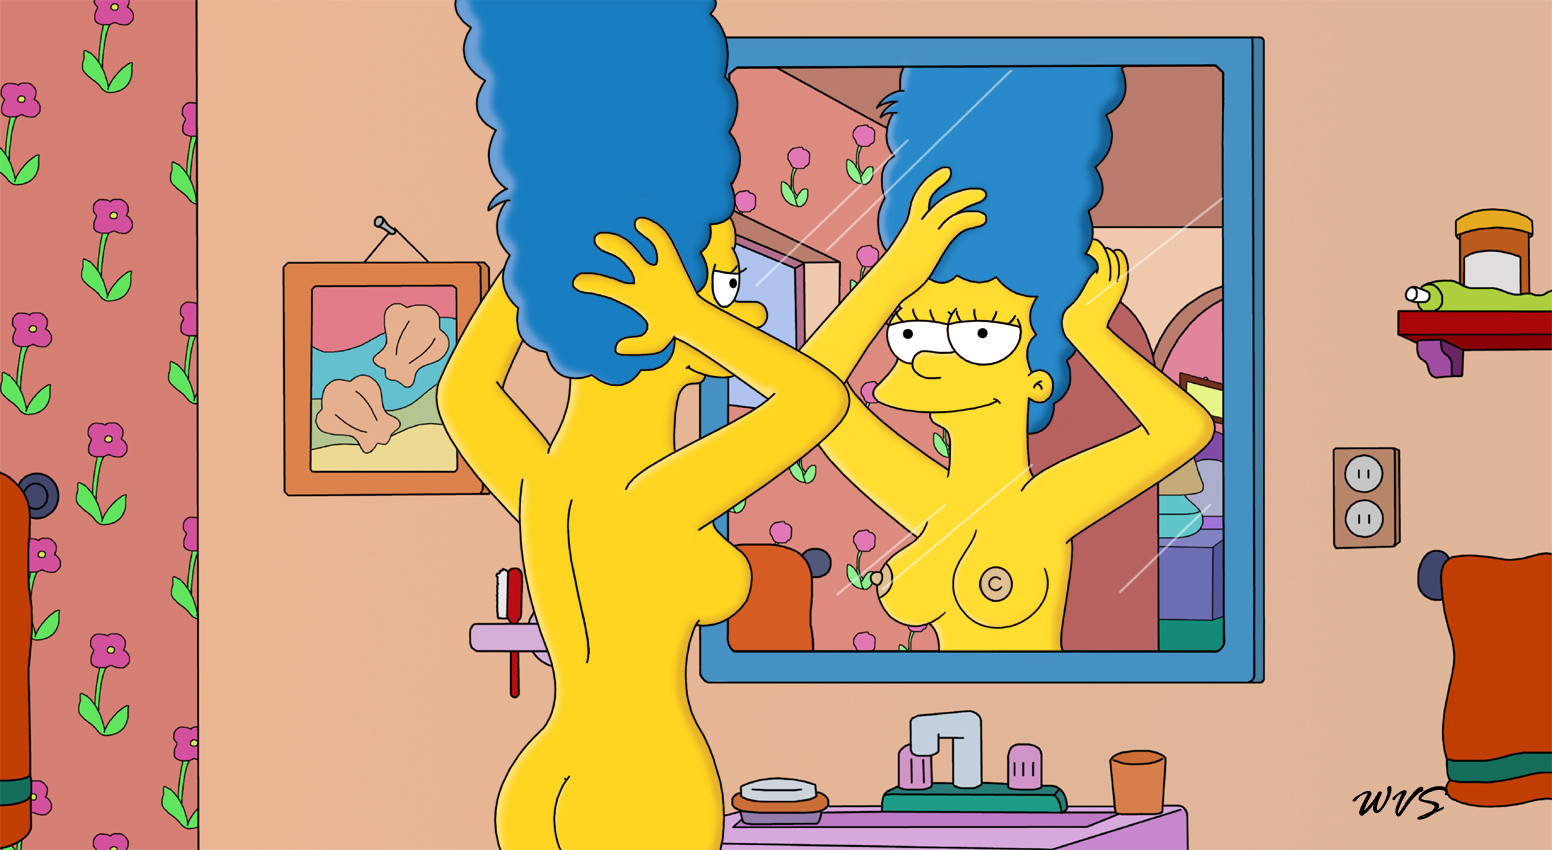 Simpson hit run nude mod fucking download